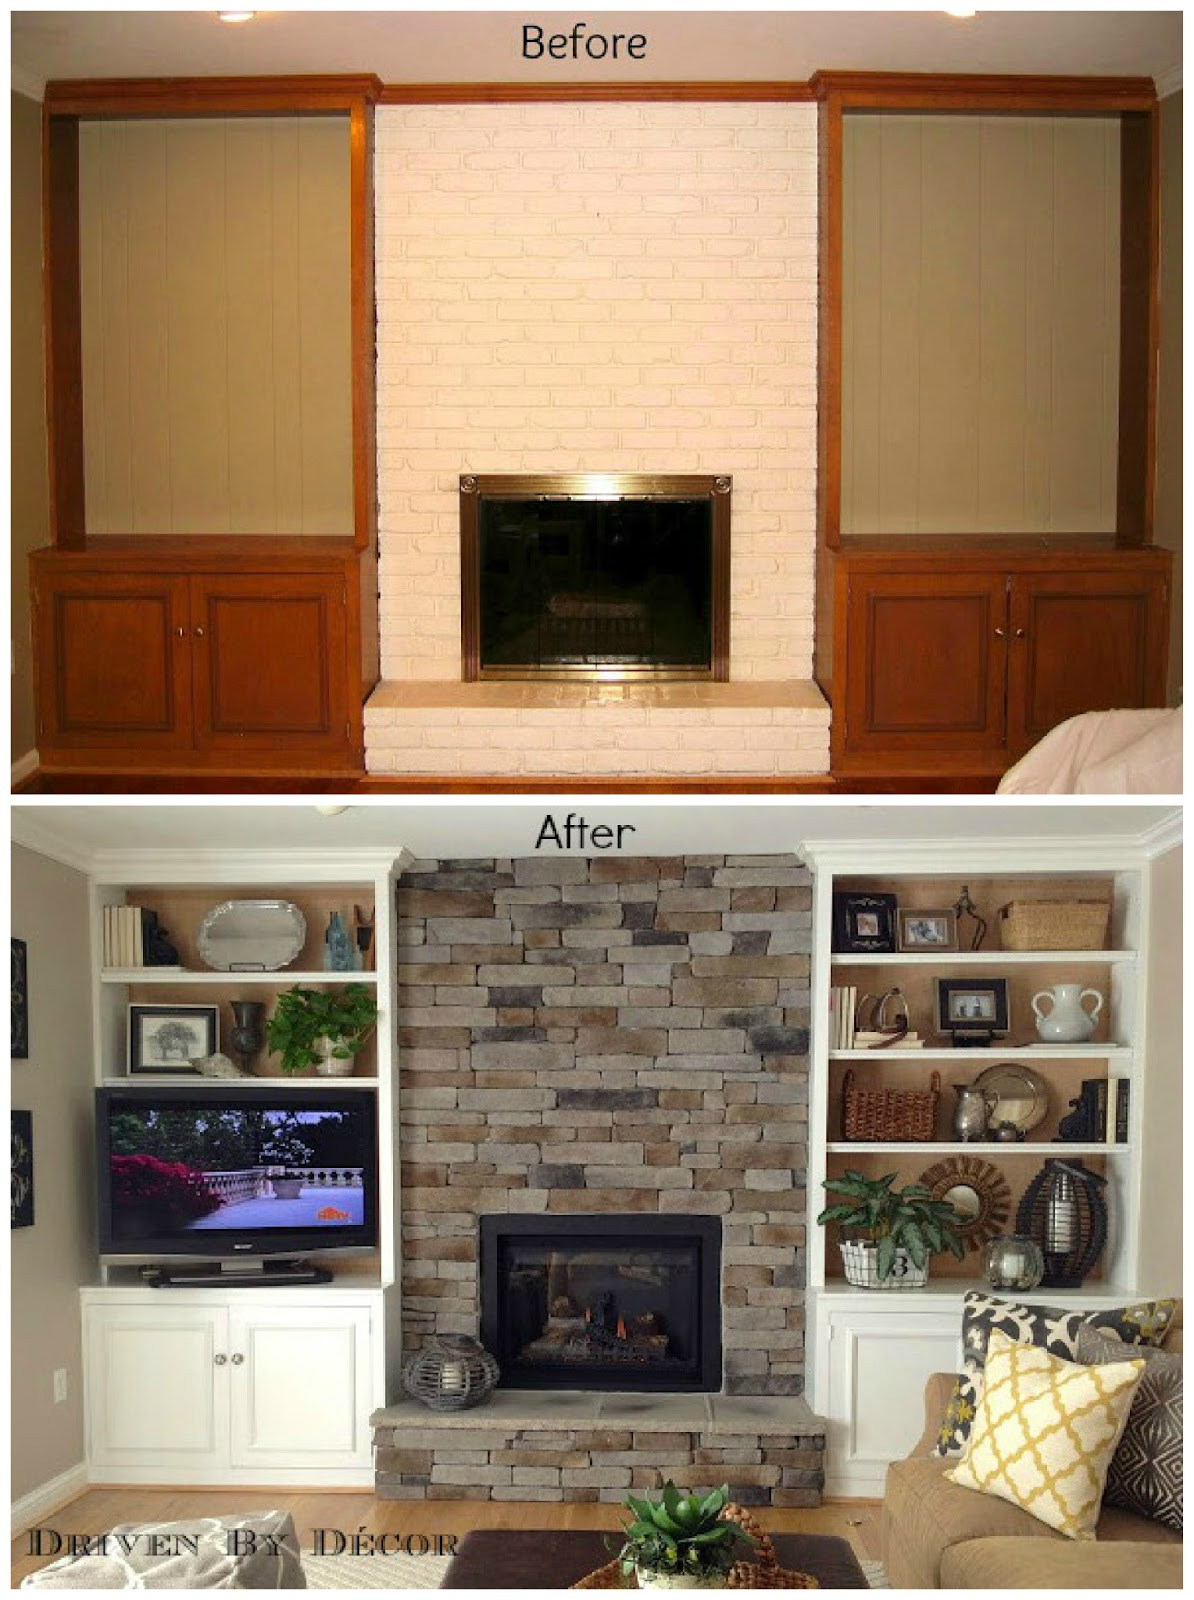 Transforming a Fireplace and Built in Bookcases